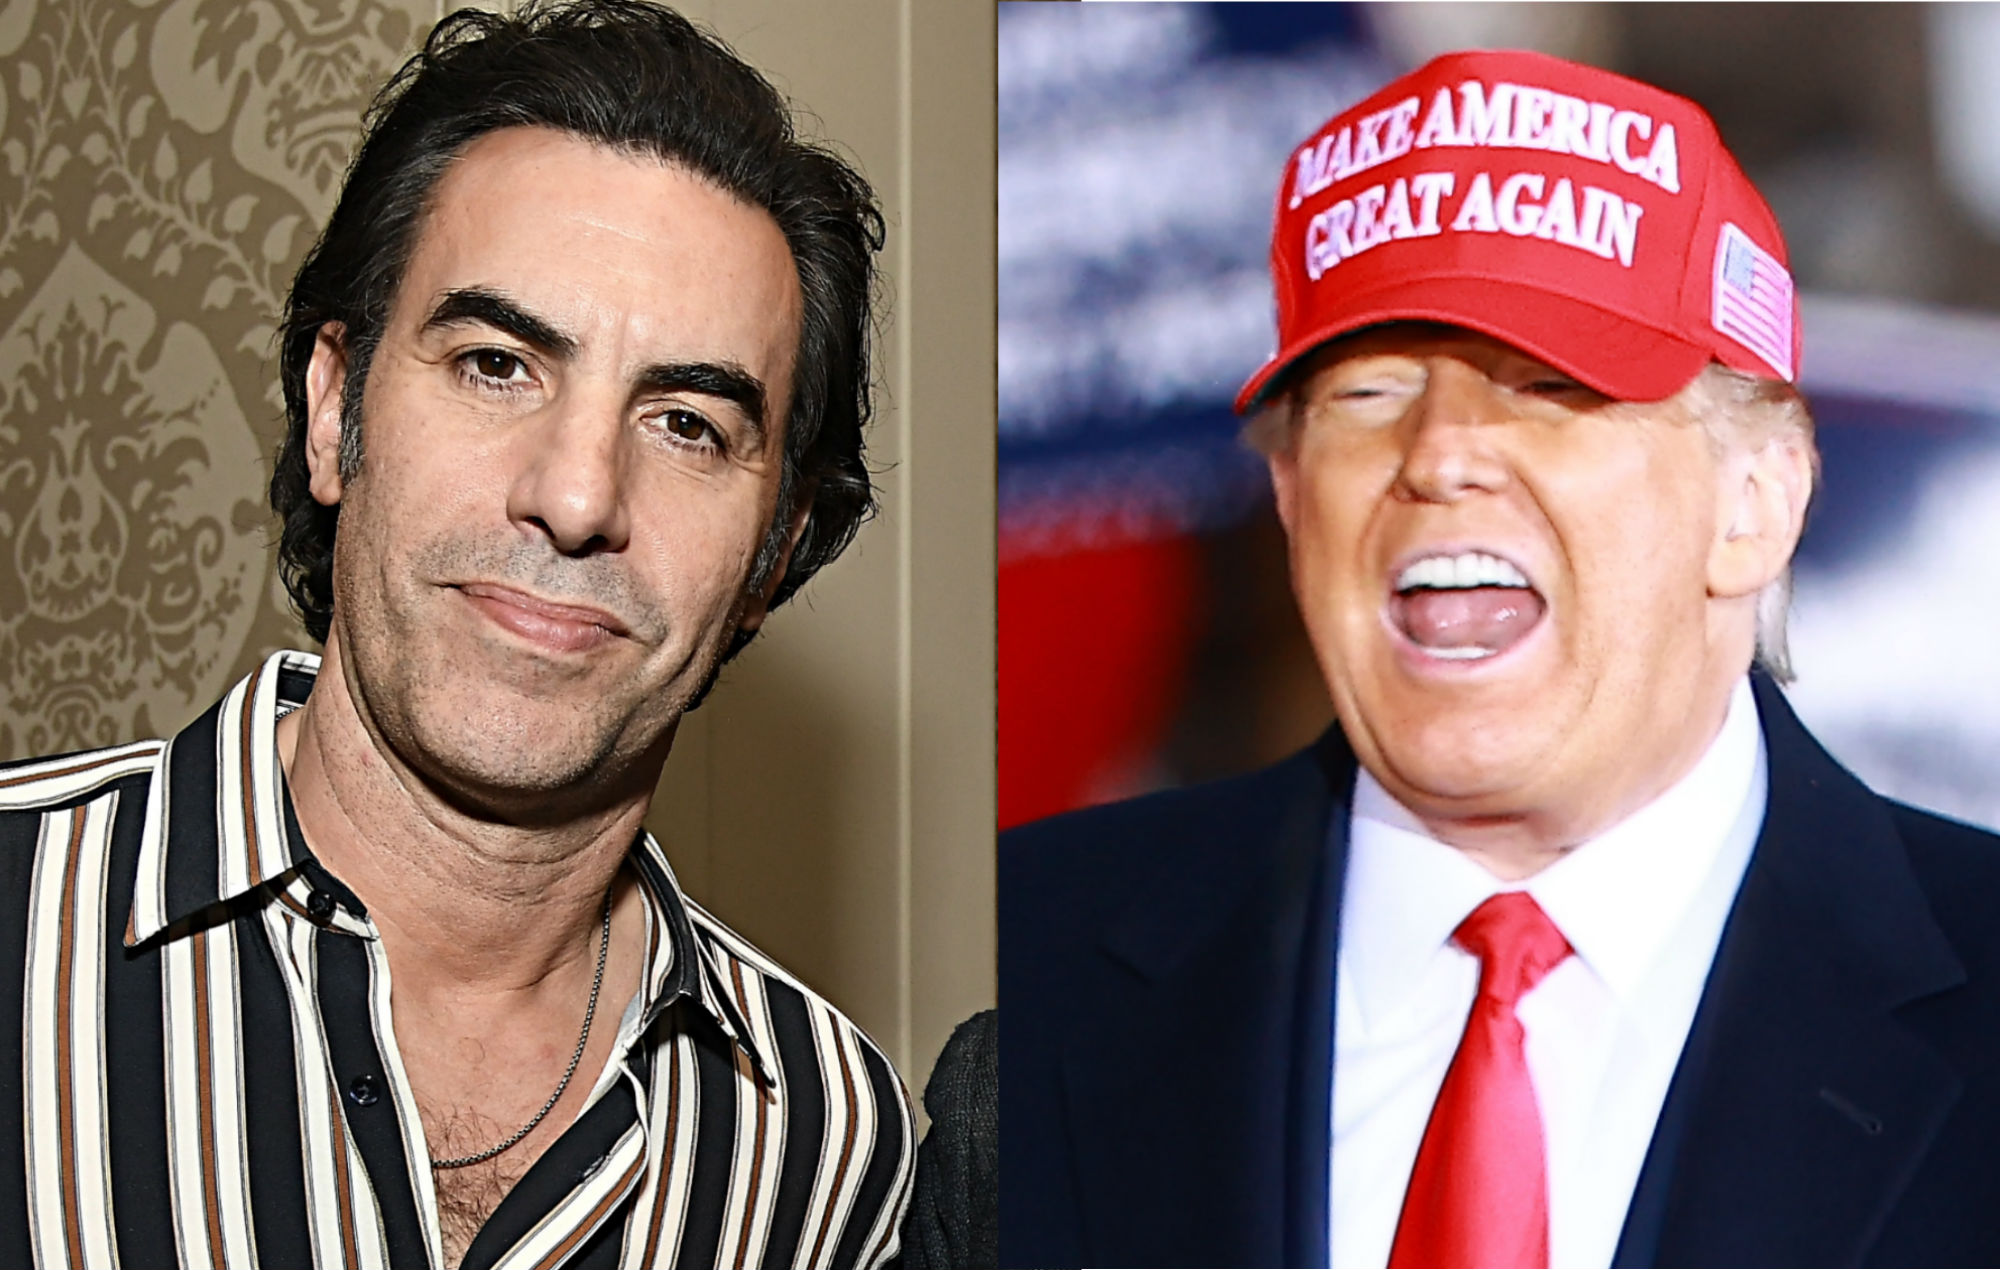 Sacha Baron Cohen and Donald Trump